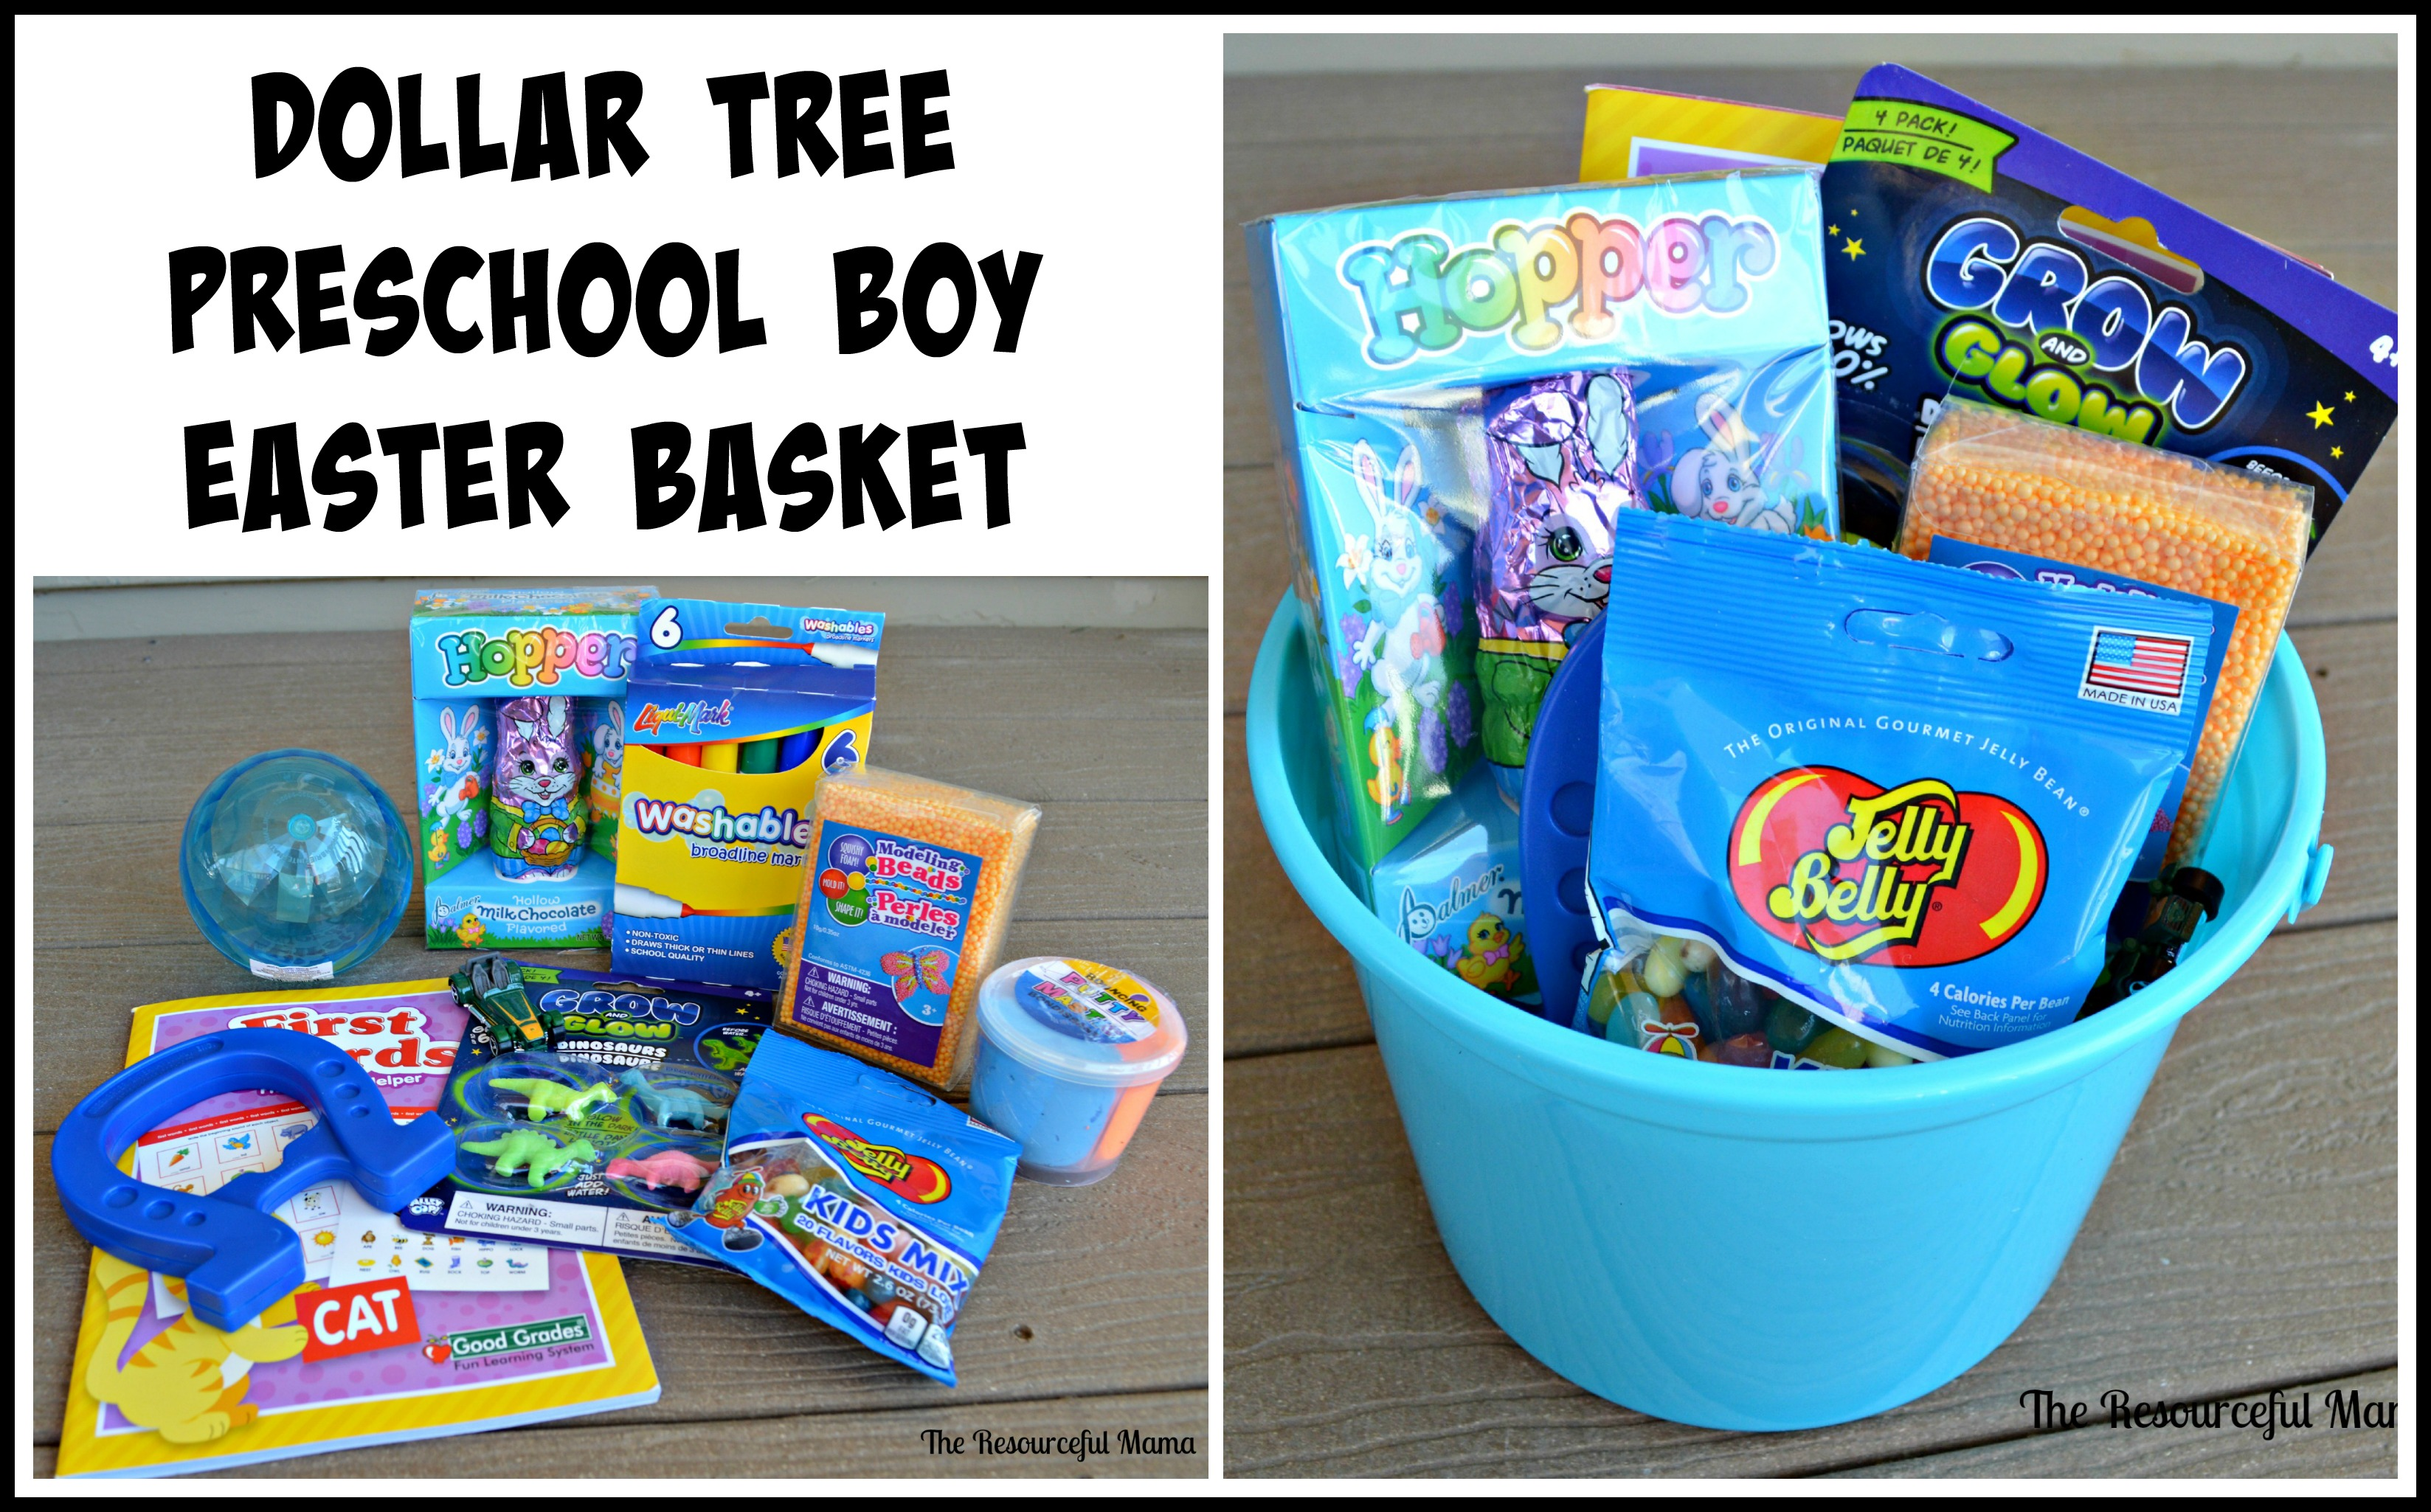 Dollar tree easter baskets the resourceful mama dollar tree easter basket for a preschool boy negle Choice Image